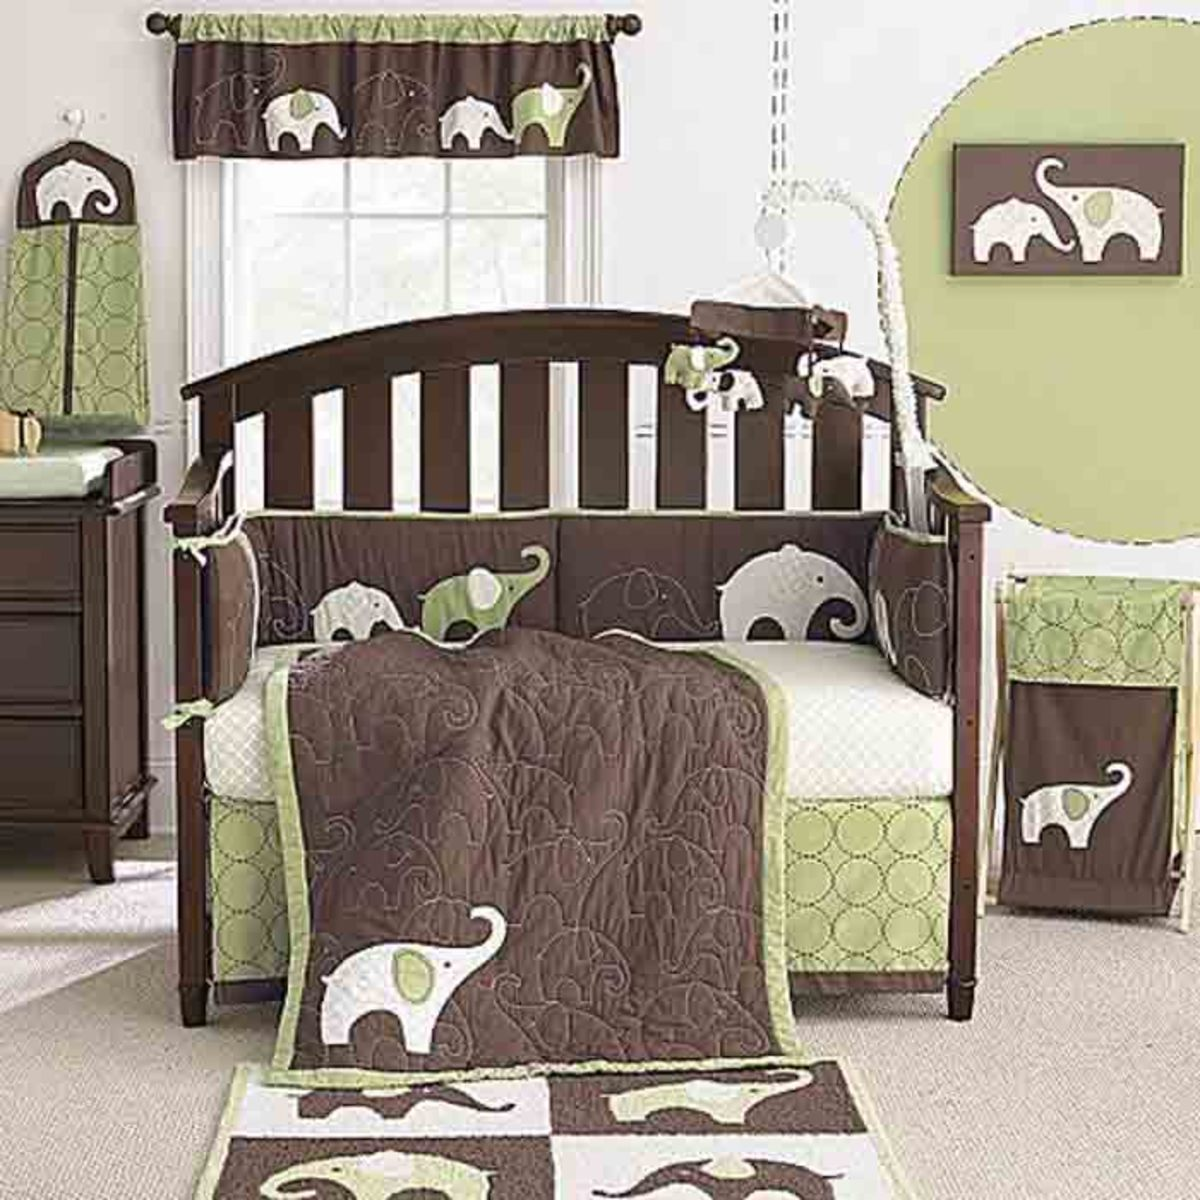 Decorating ideas for a baby boy nursery Baby designs for rooms